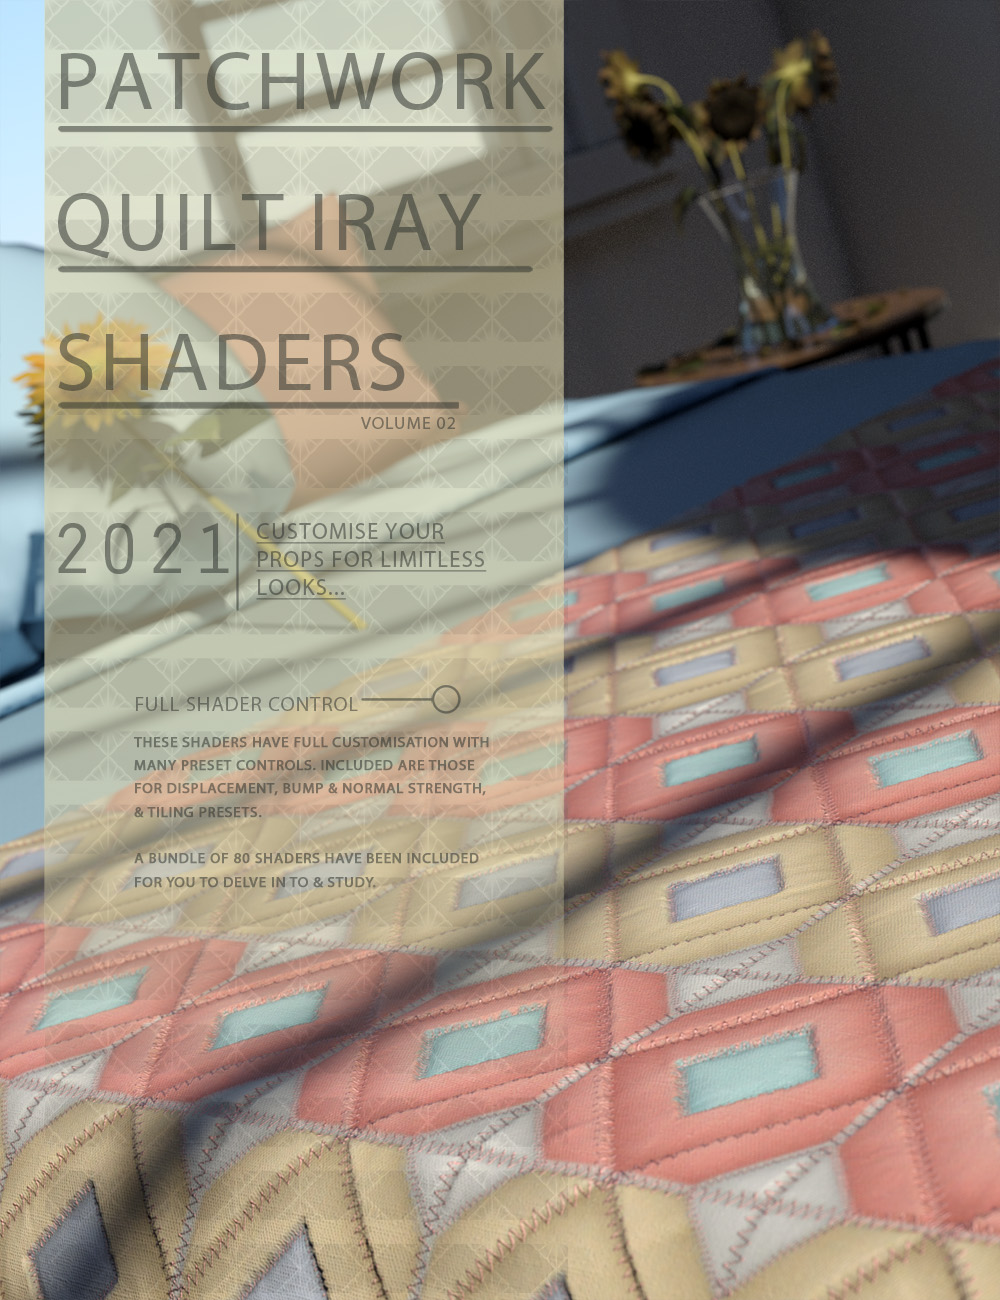 Patchwork Quilt Iray Shaders Vol 2 by: ForbiddenWhispers, 3D Models by Daz 3D